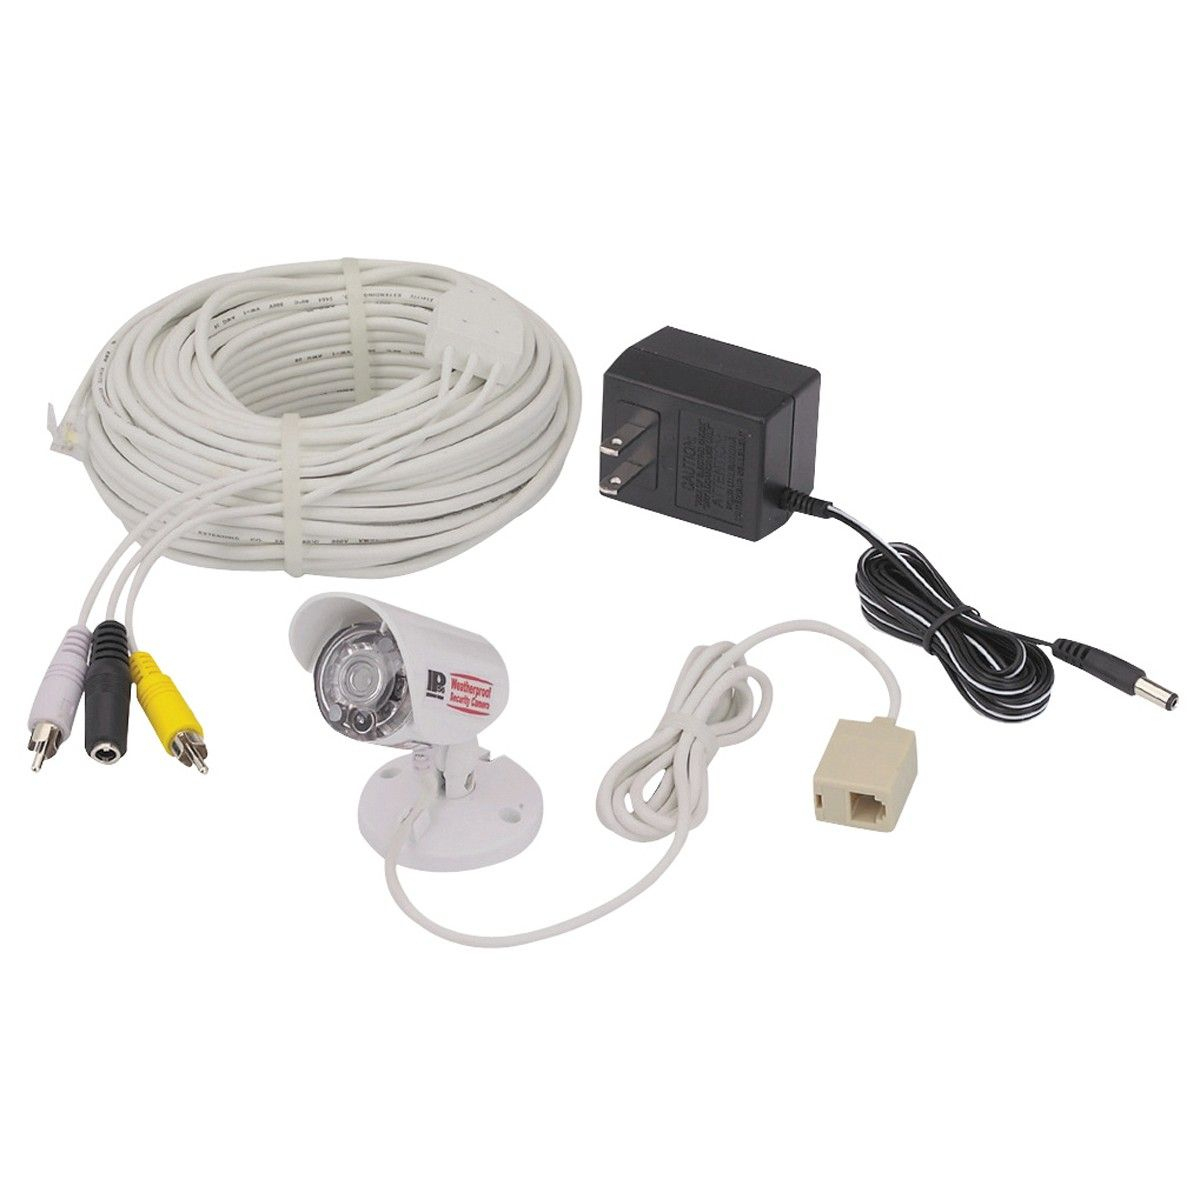 Harbor Freight Security Camera 47546 Wiring-Diagram Are You - Harbor Freight Security Camera Wiring Diagram